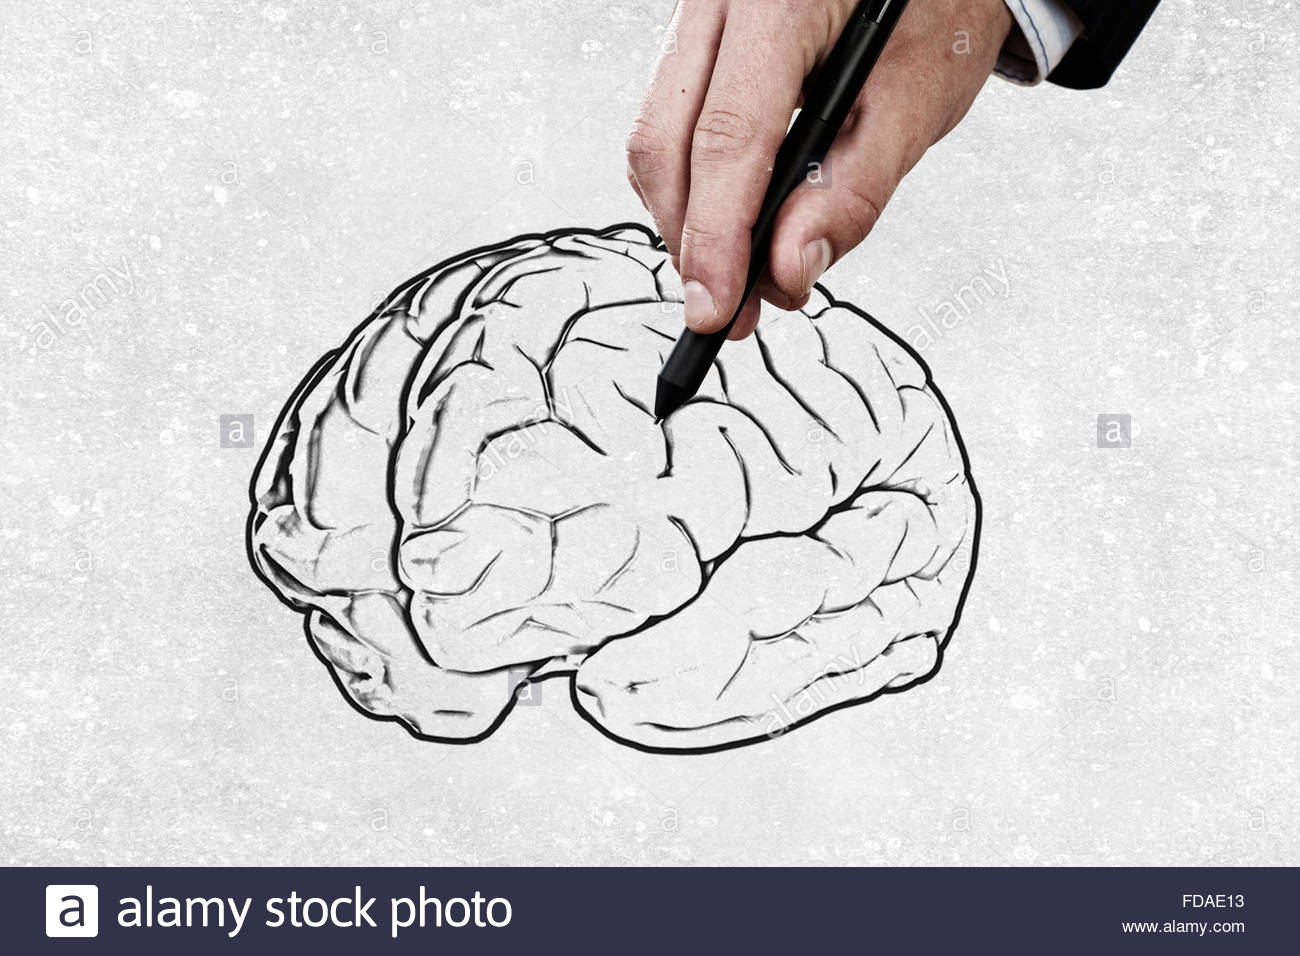 1300x956 Close Up Of Male Hand Drawing Human Brain Stock Photo 94272895